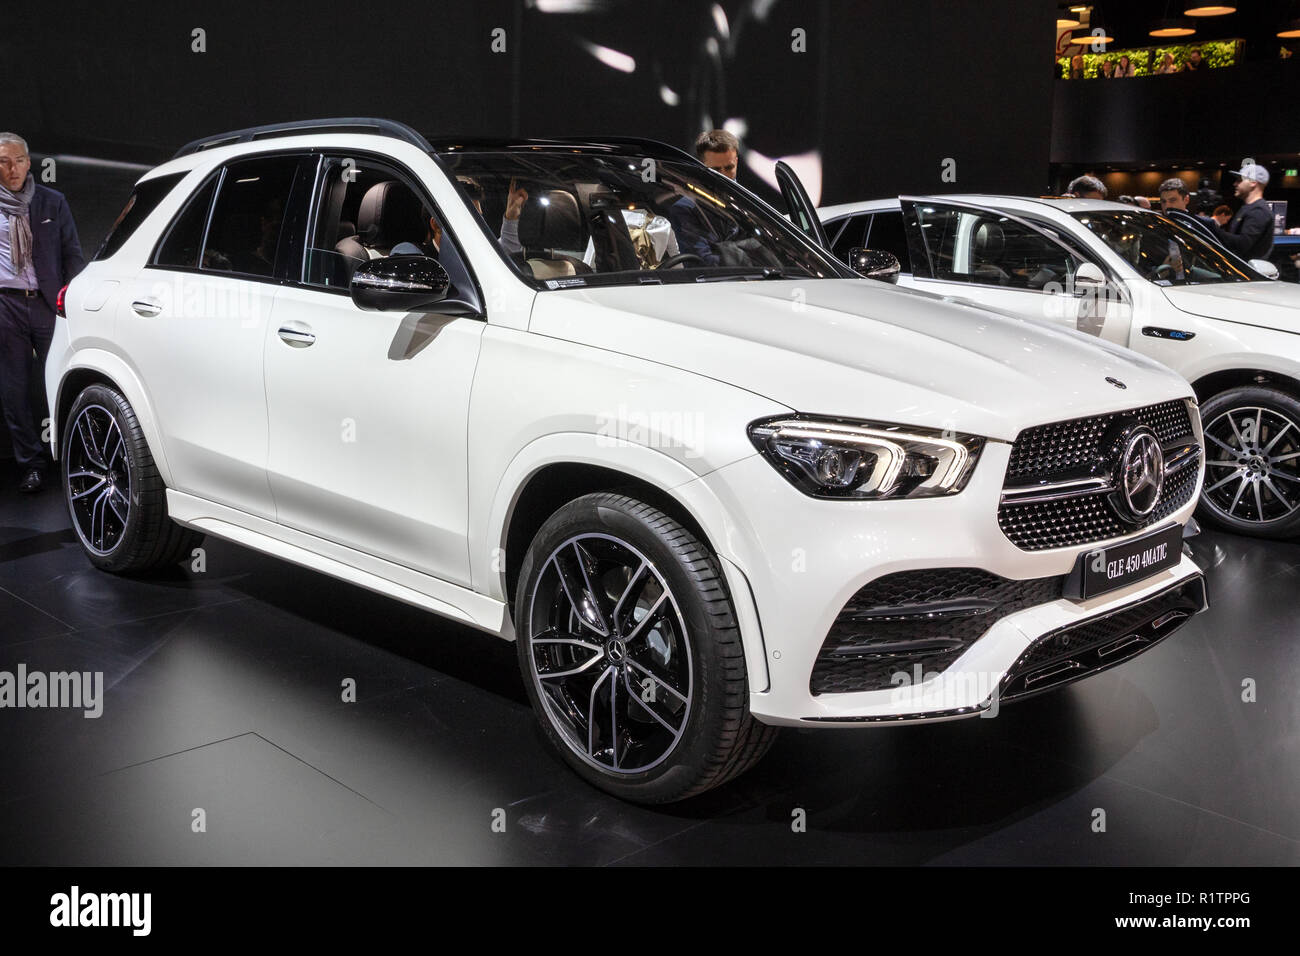 paris okt 3 2018 neue 2019 mercedes gle 450 4matic. Black Bedroom Furniture Sets. Home Design Ideas